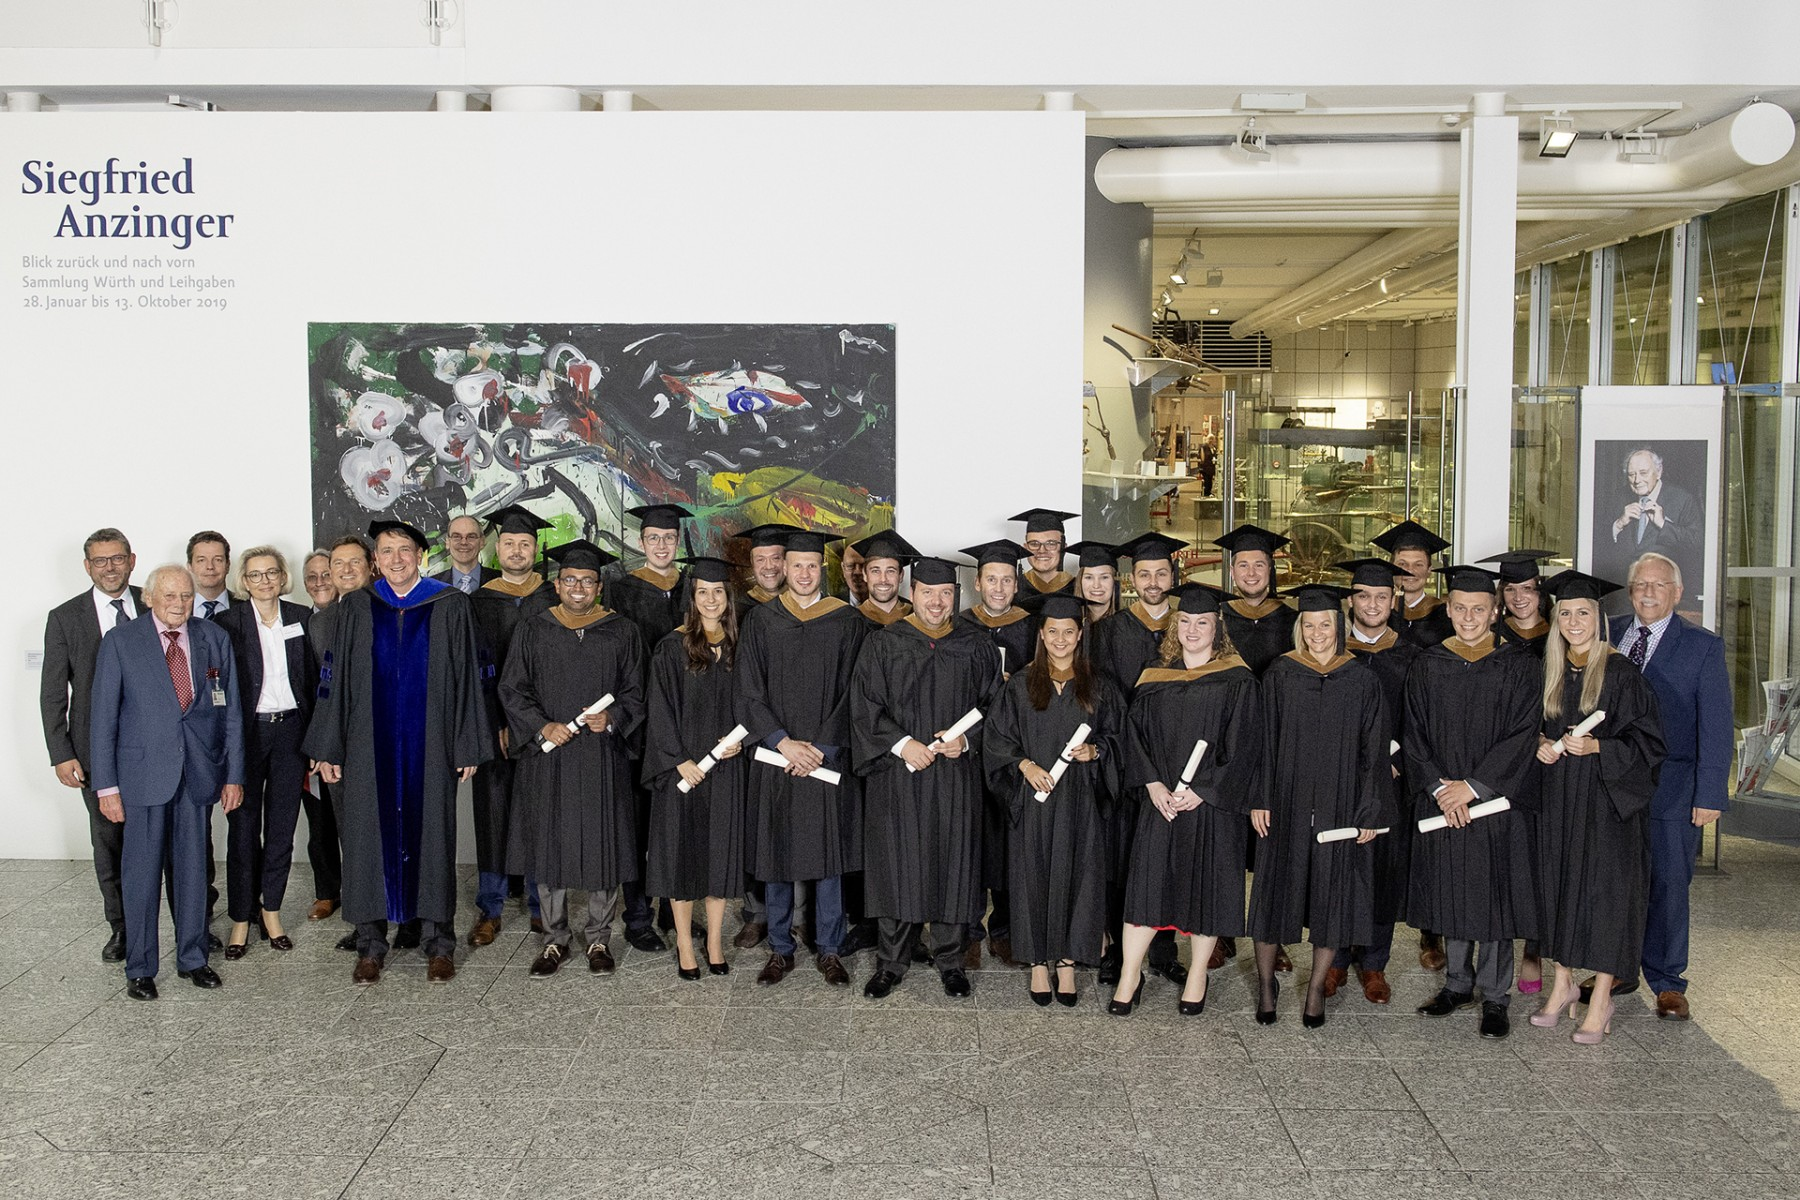 2019 Graduates of University of Louisville celebrate Master's degree